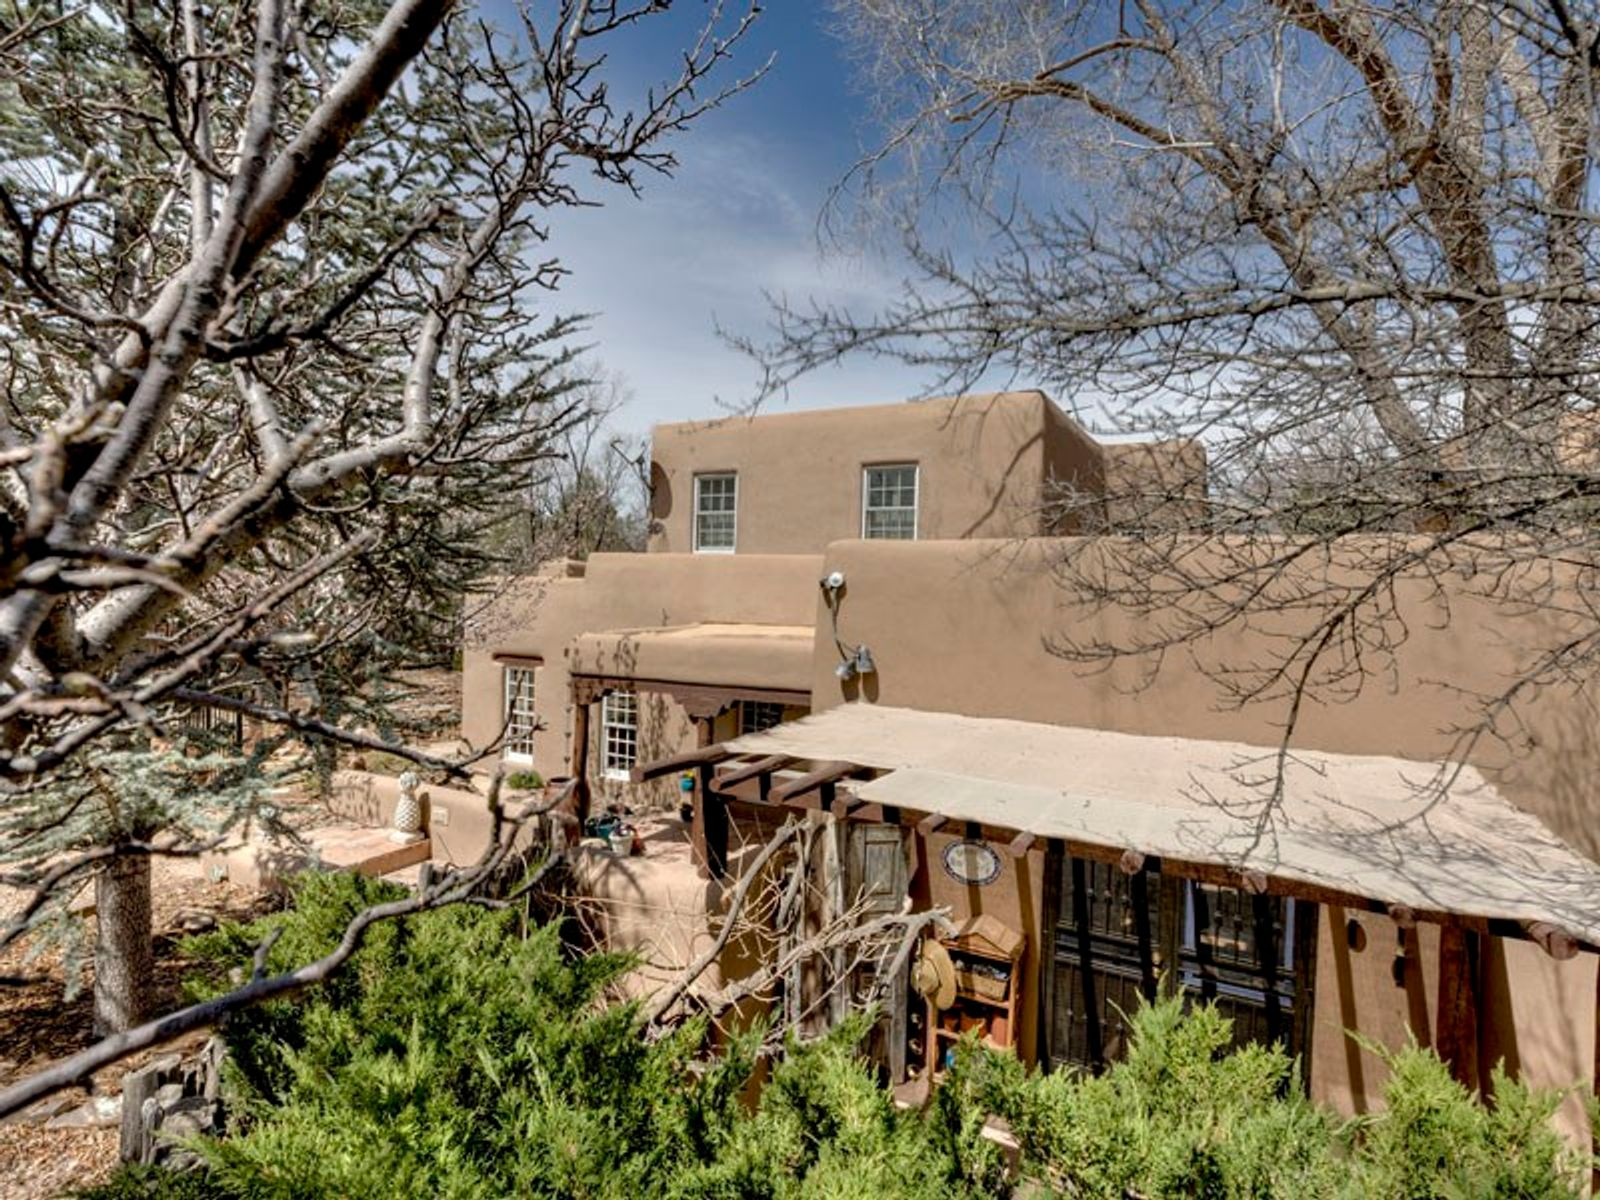 586-1/2 Camino Del Monte Sol, Santa Fe NM Single Family Home - Santa Fe Real Estate